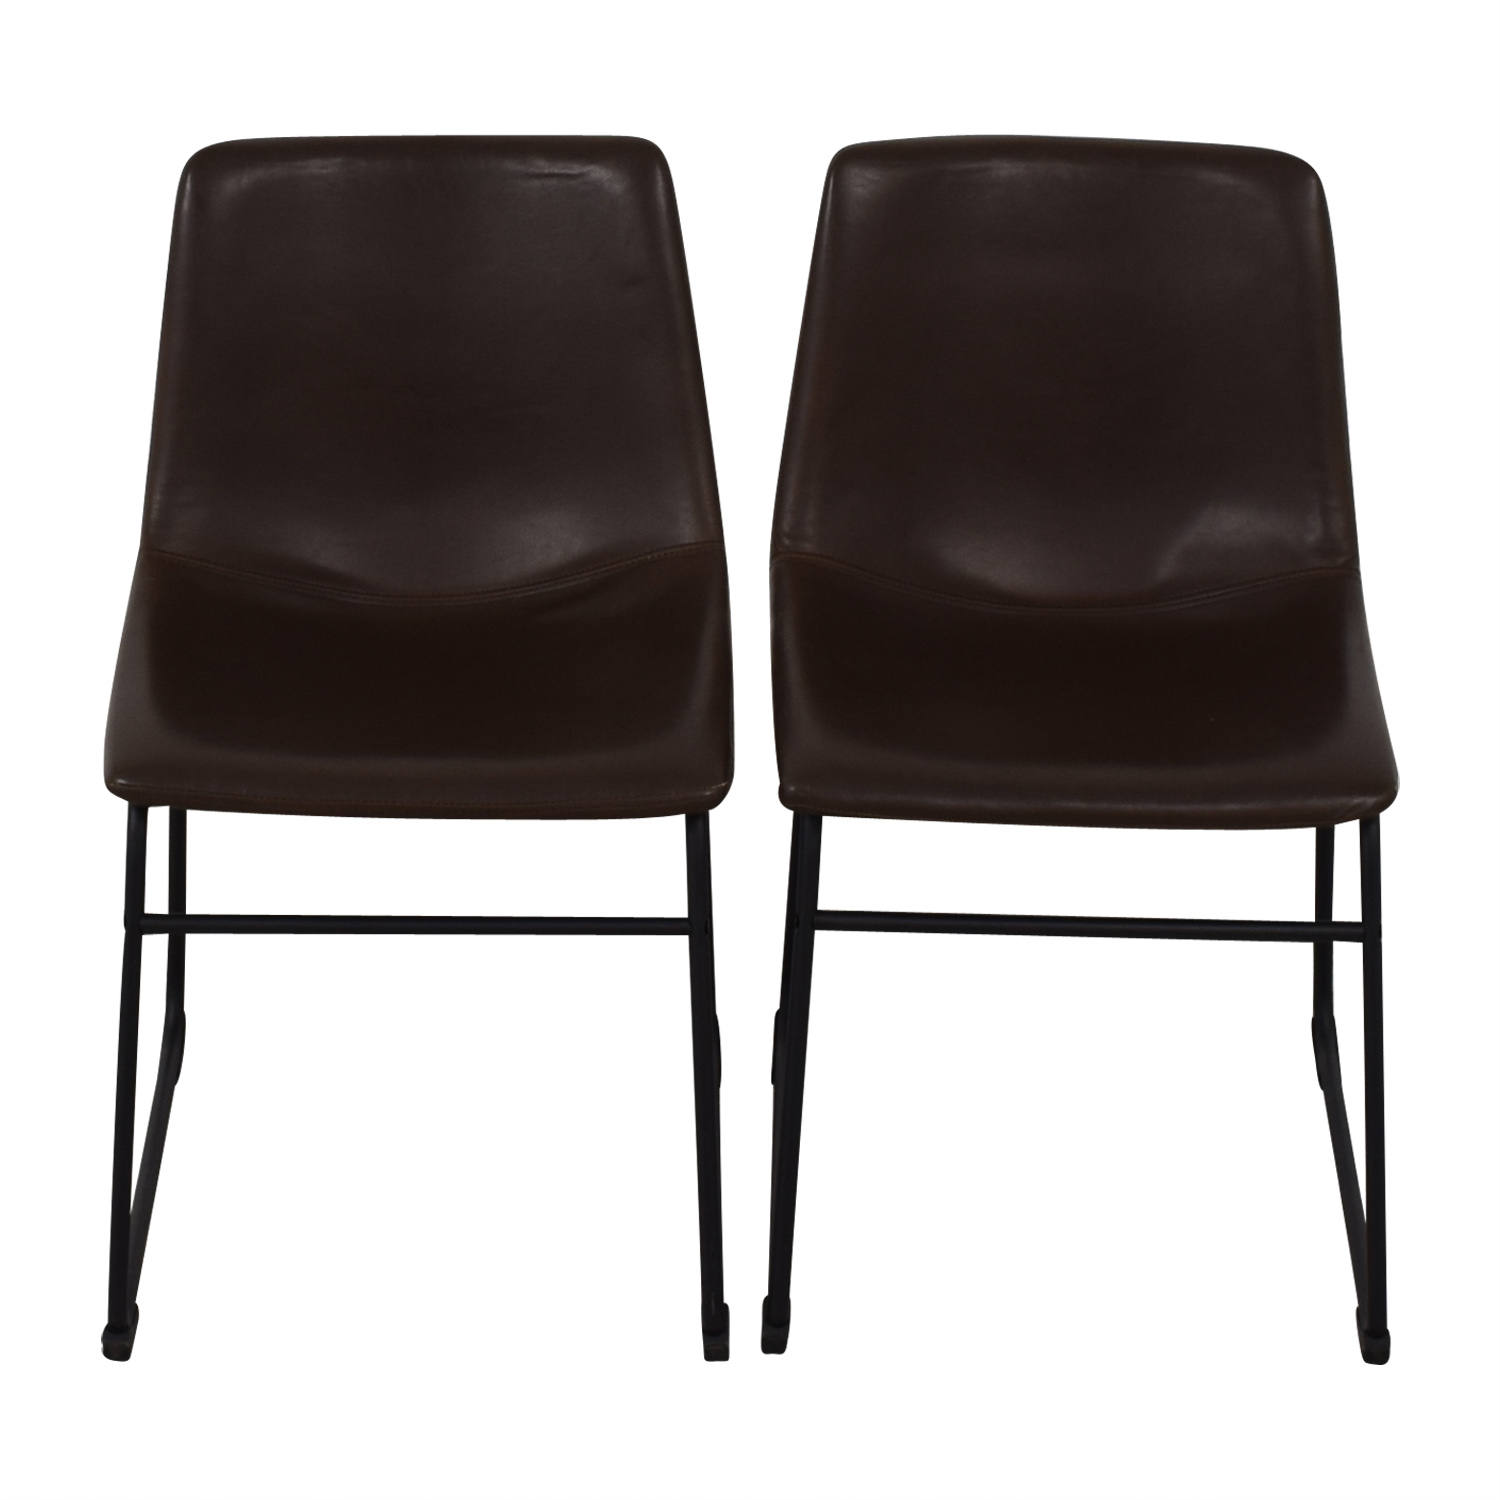 Walker Edison Walker Edison Industrial Faux Leather Dining Chairs price